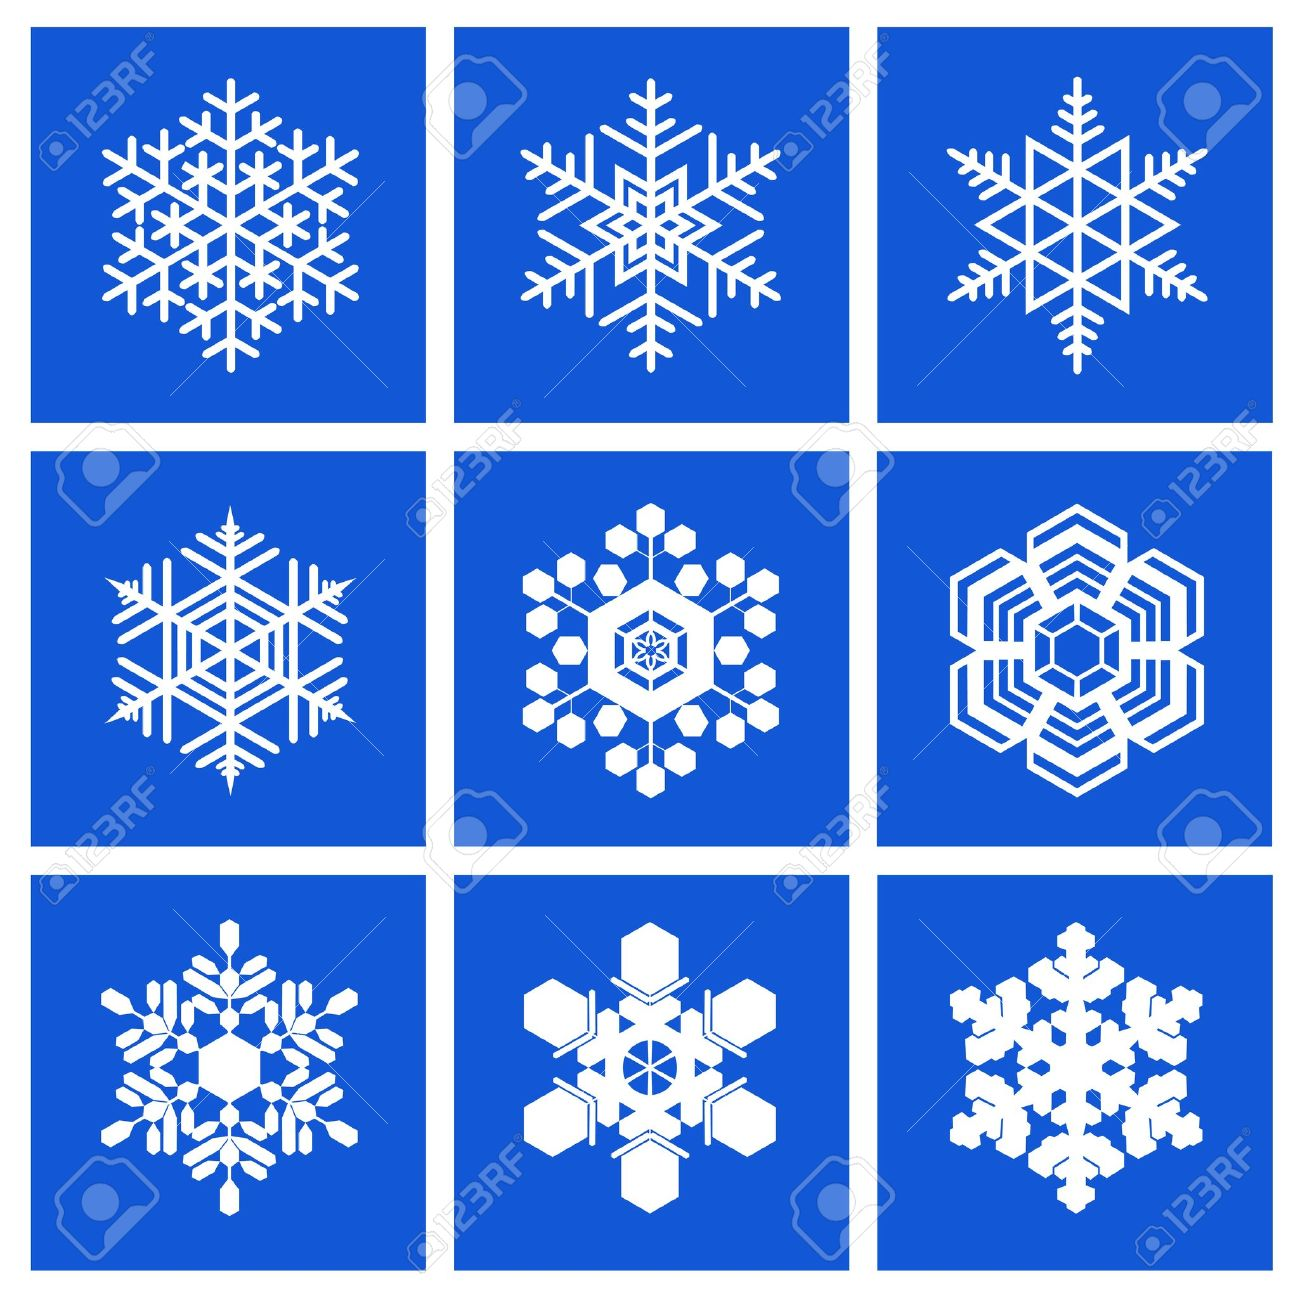 Snowflakes of different shapes are shown in the image. - 11270720